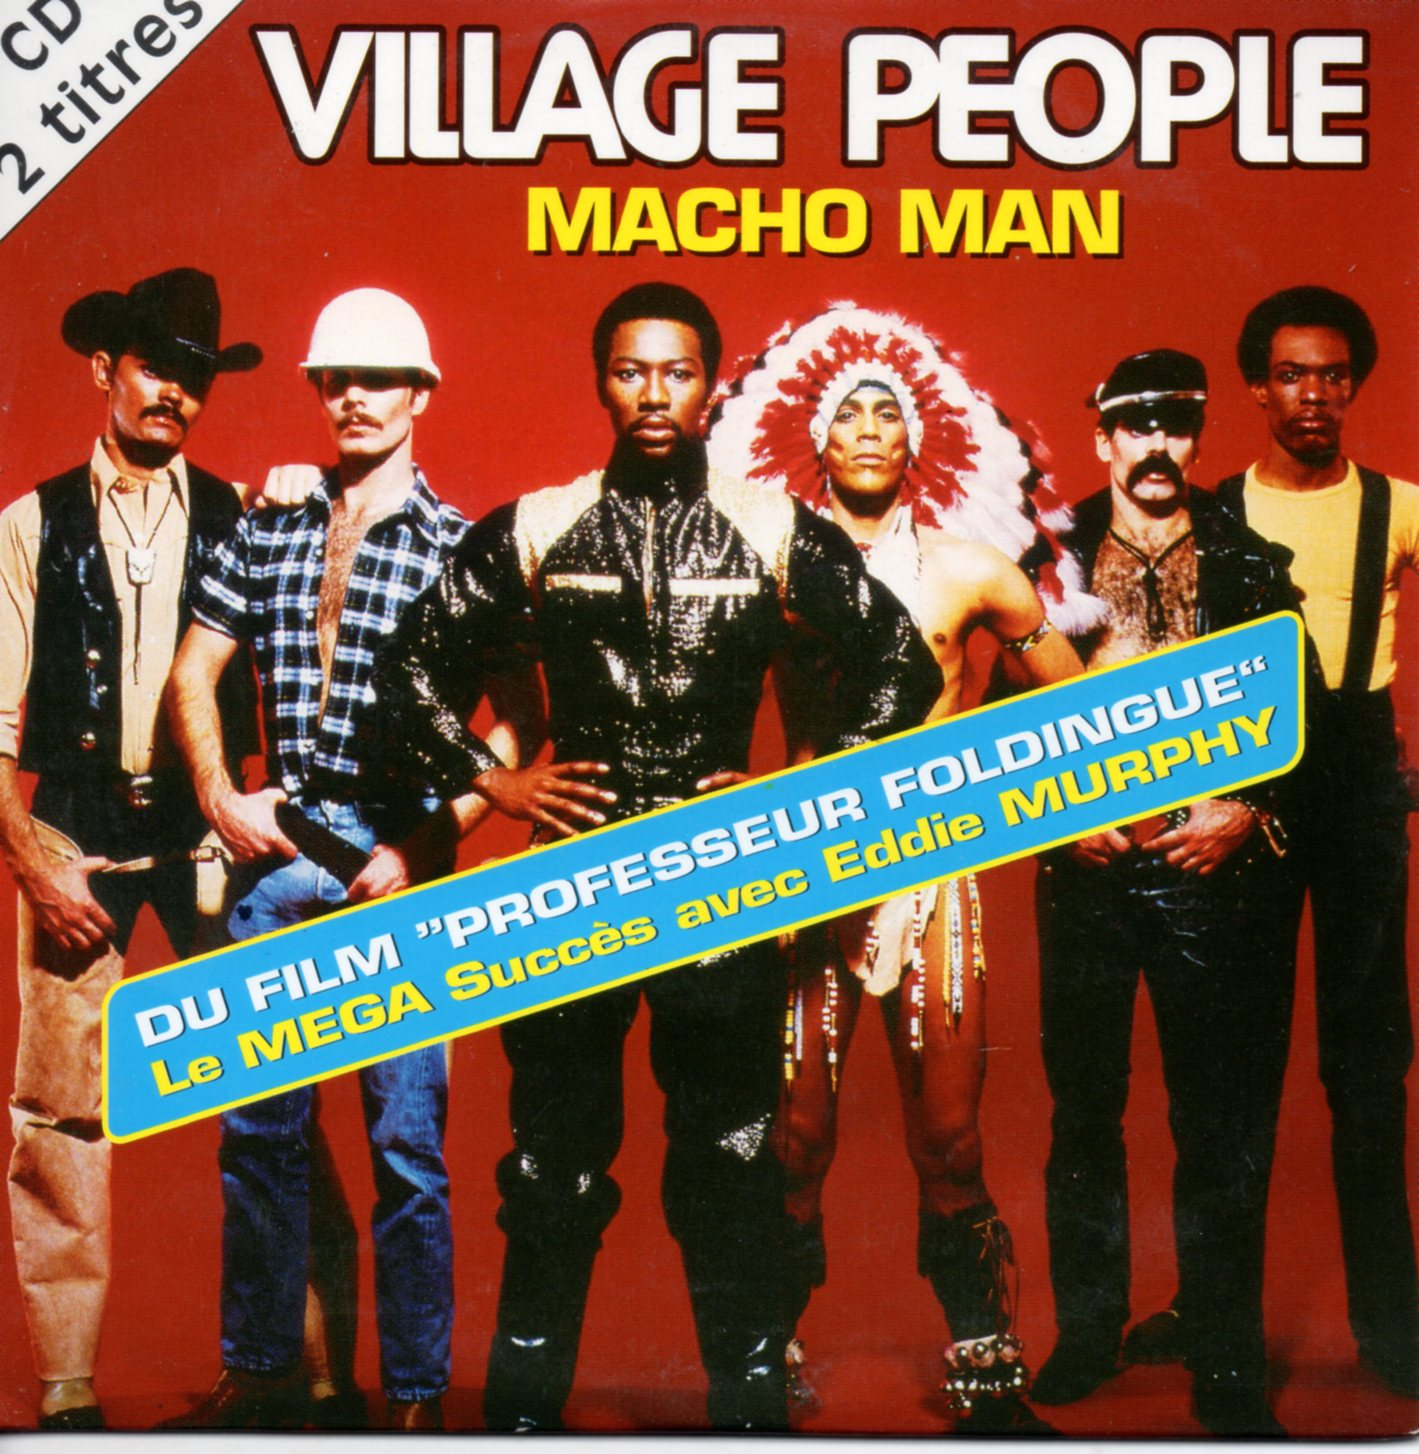 VILLAGE PEOPLE - Macho Man 2 Tracks Card Sleeve